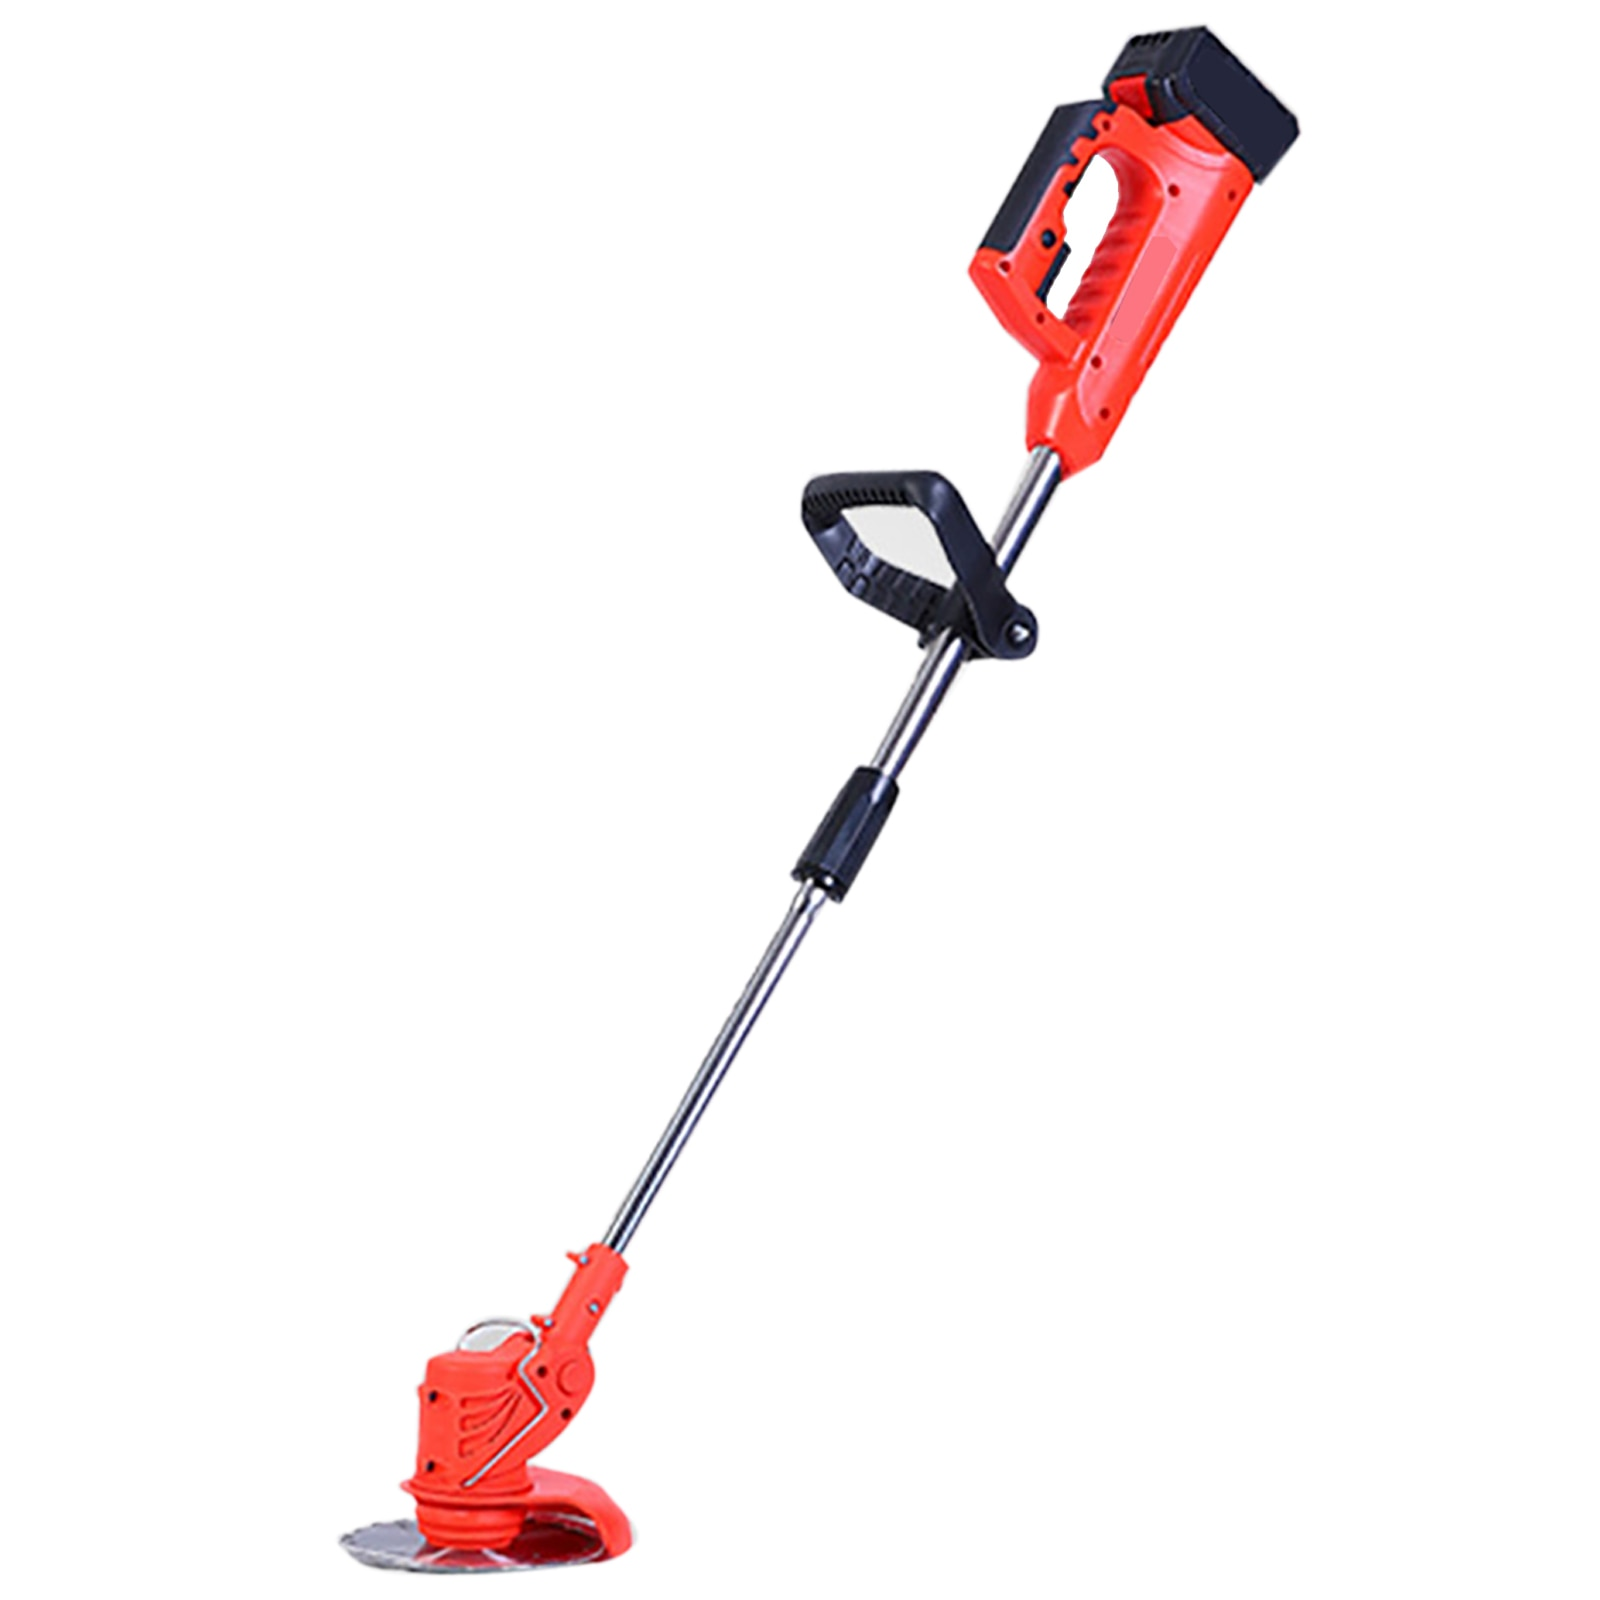 Electric Grass Cutter Portable Lawn Mower Handheld Lawn Mower Lithium Battery Lawn Trimming Wireless Household Garden Tools